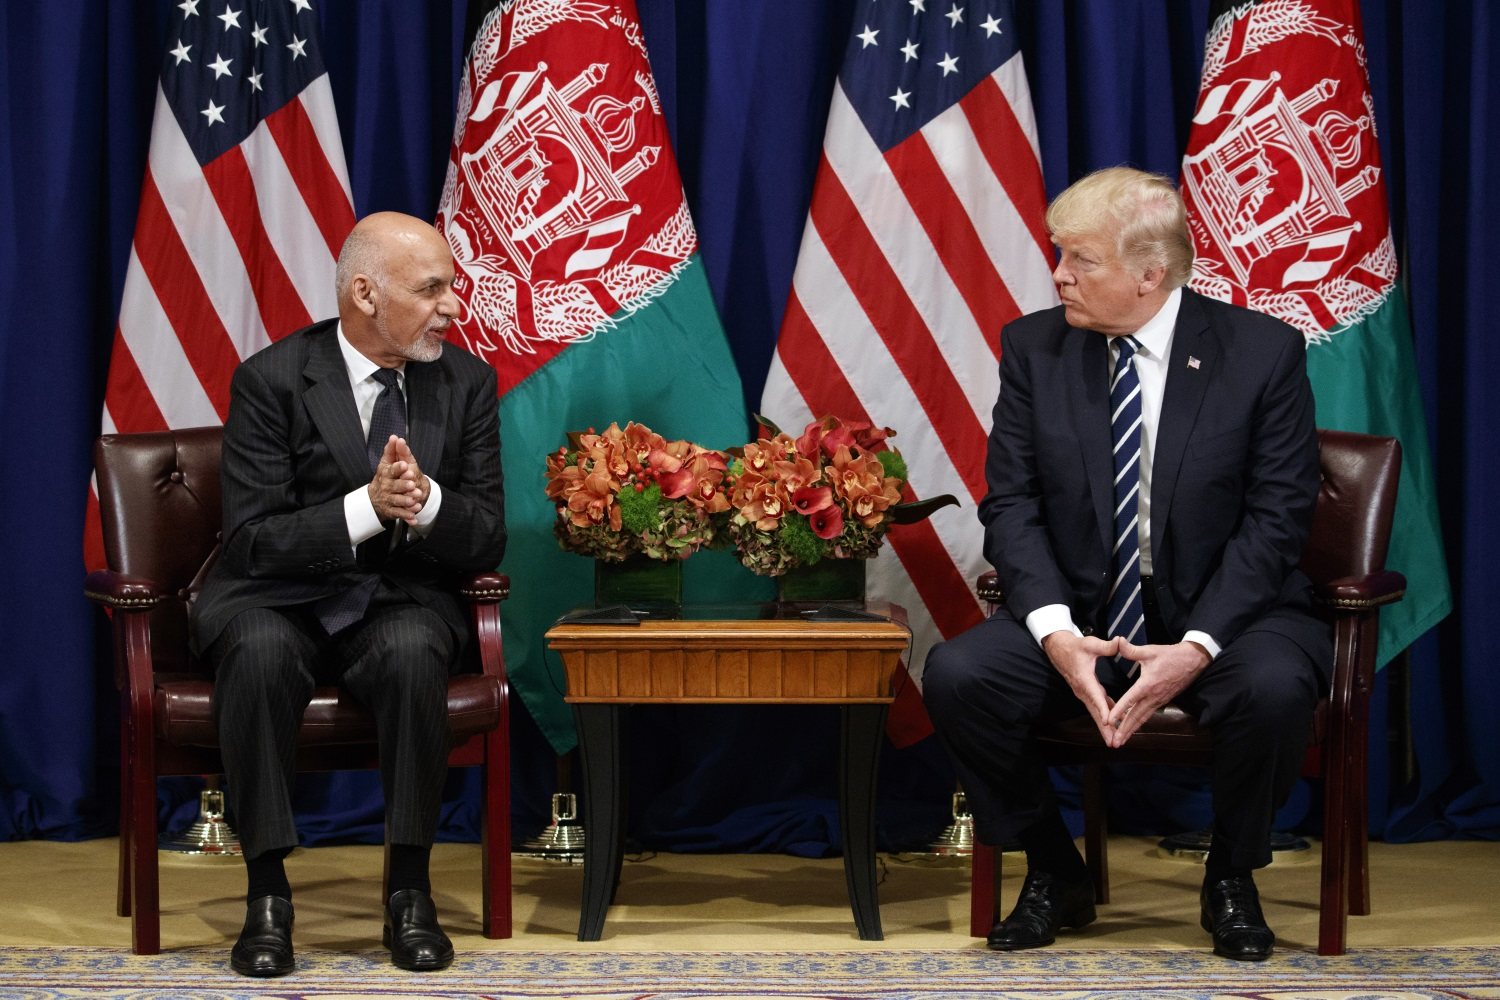 President Donald Trump meets with Afghan President Ashraf Ghani at the Palace Hotel during the United Nations General Assembly, Thursday, Sept. 21, 2017, in New York. (Evan Vucci/AP)